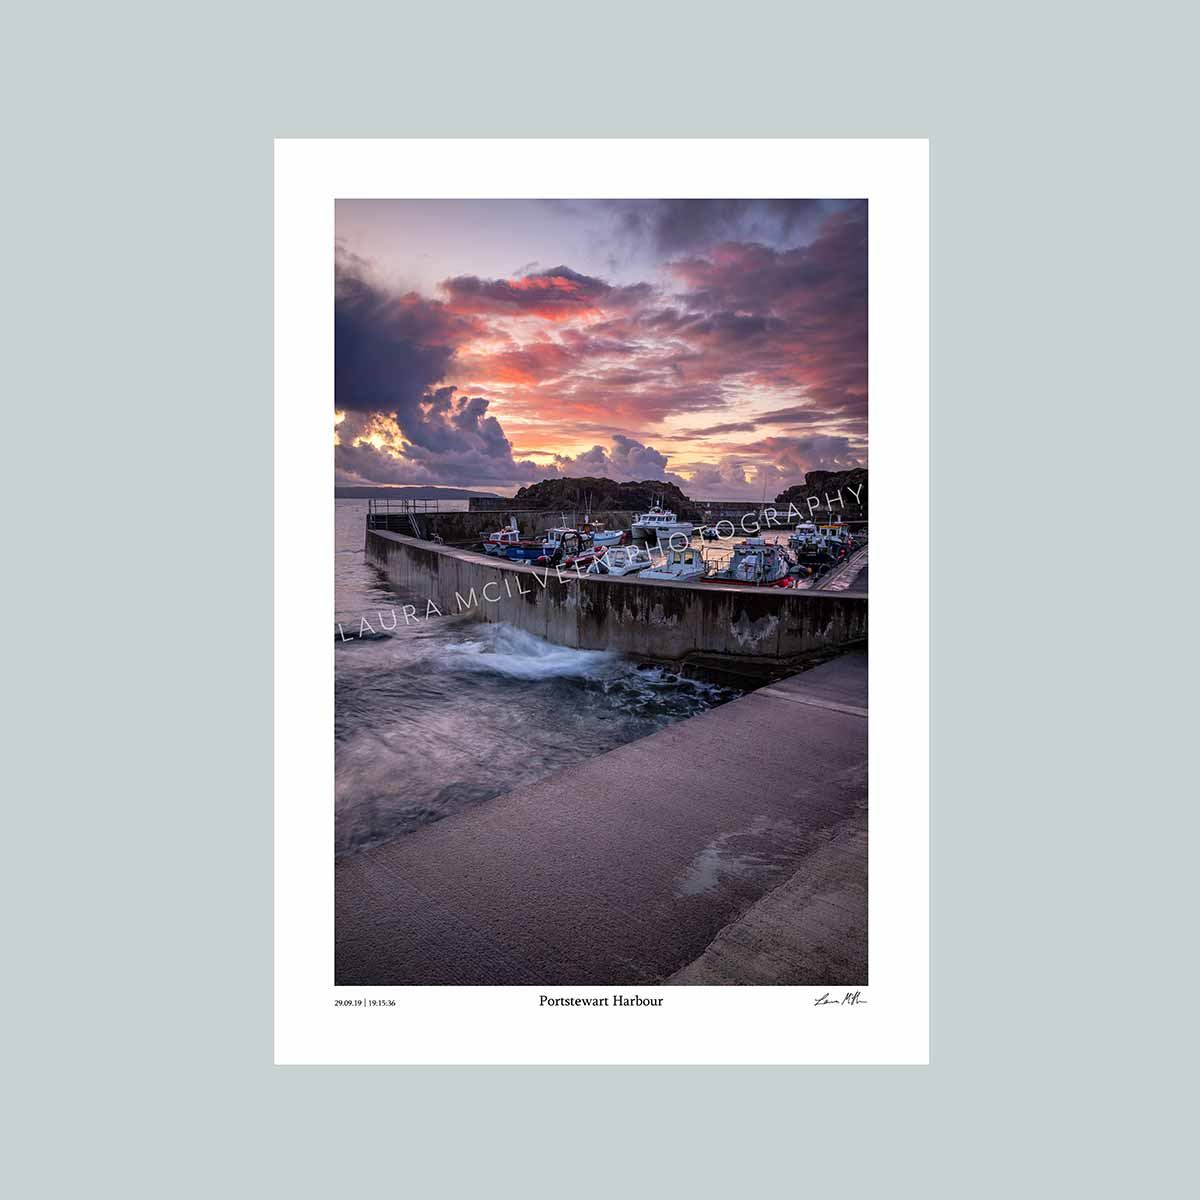 Portstewart Harbour - The Timed Collection